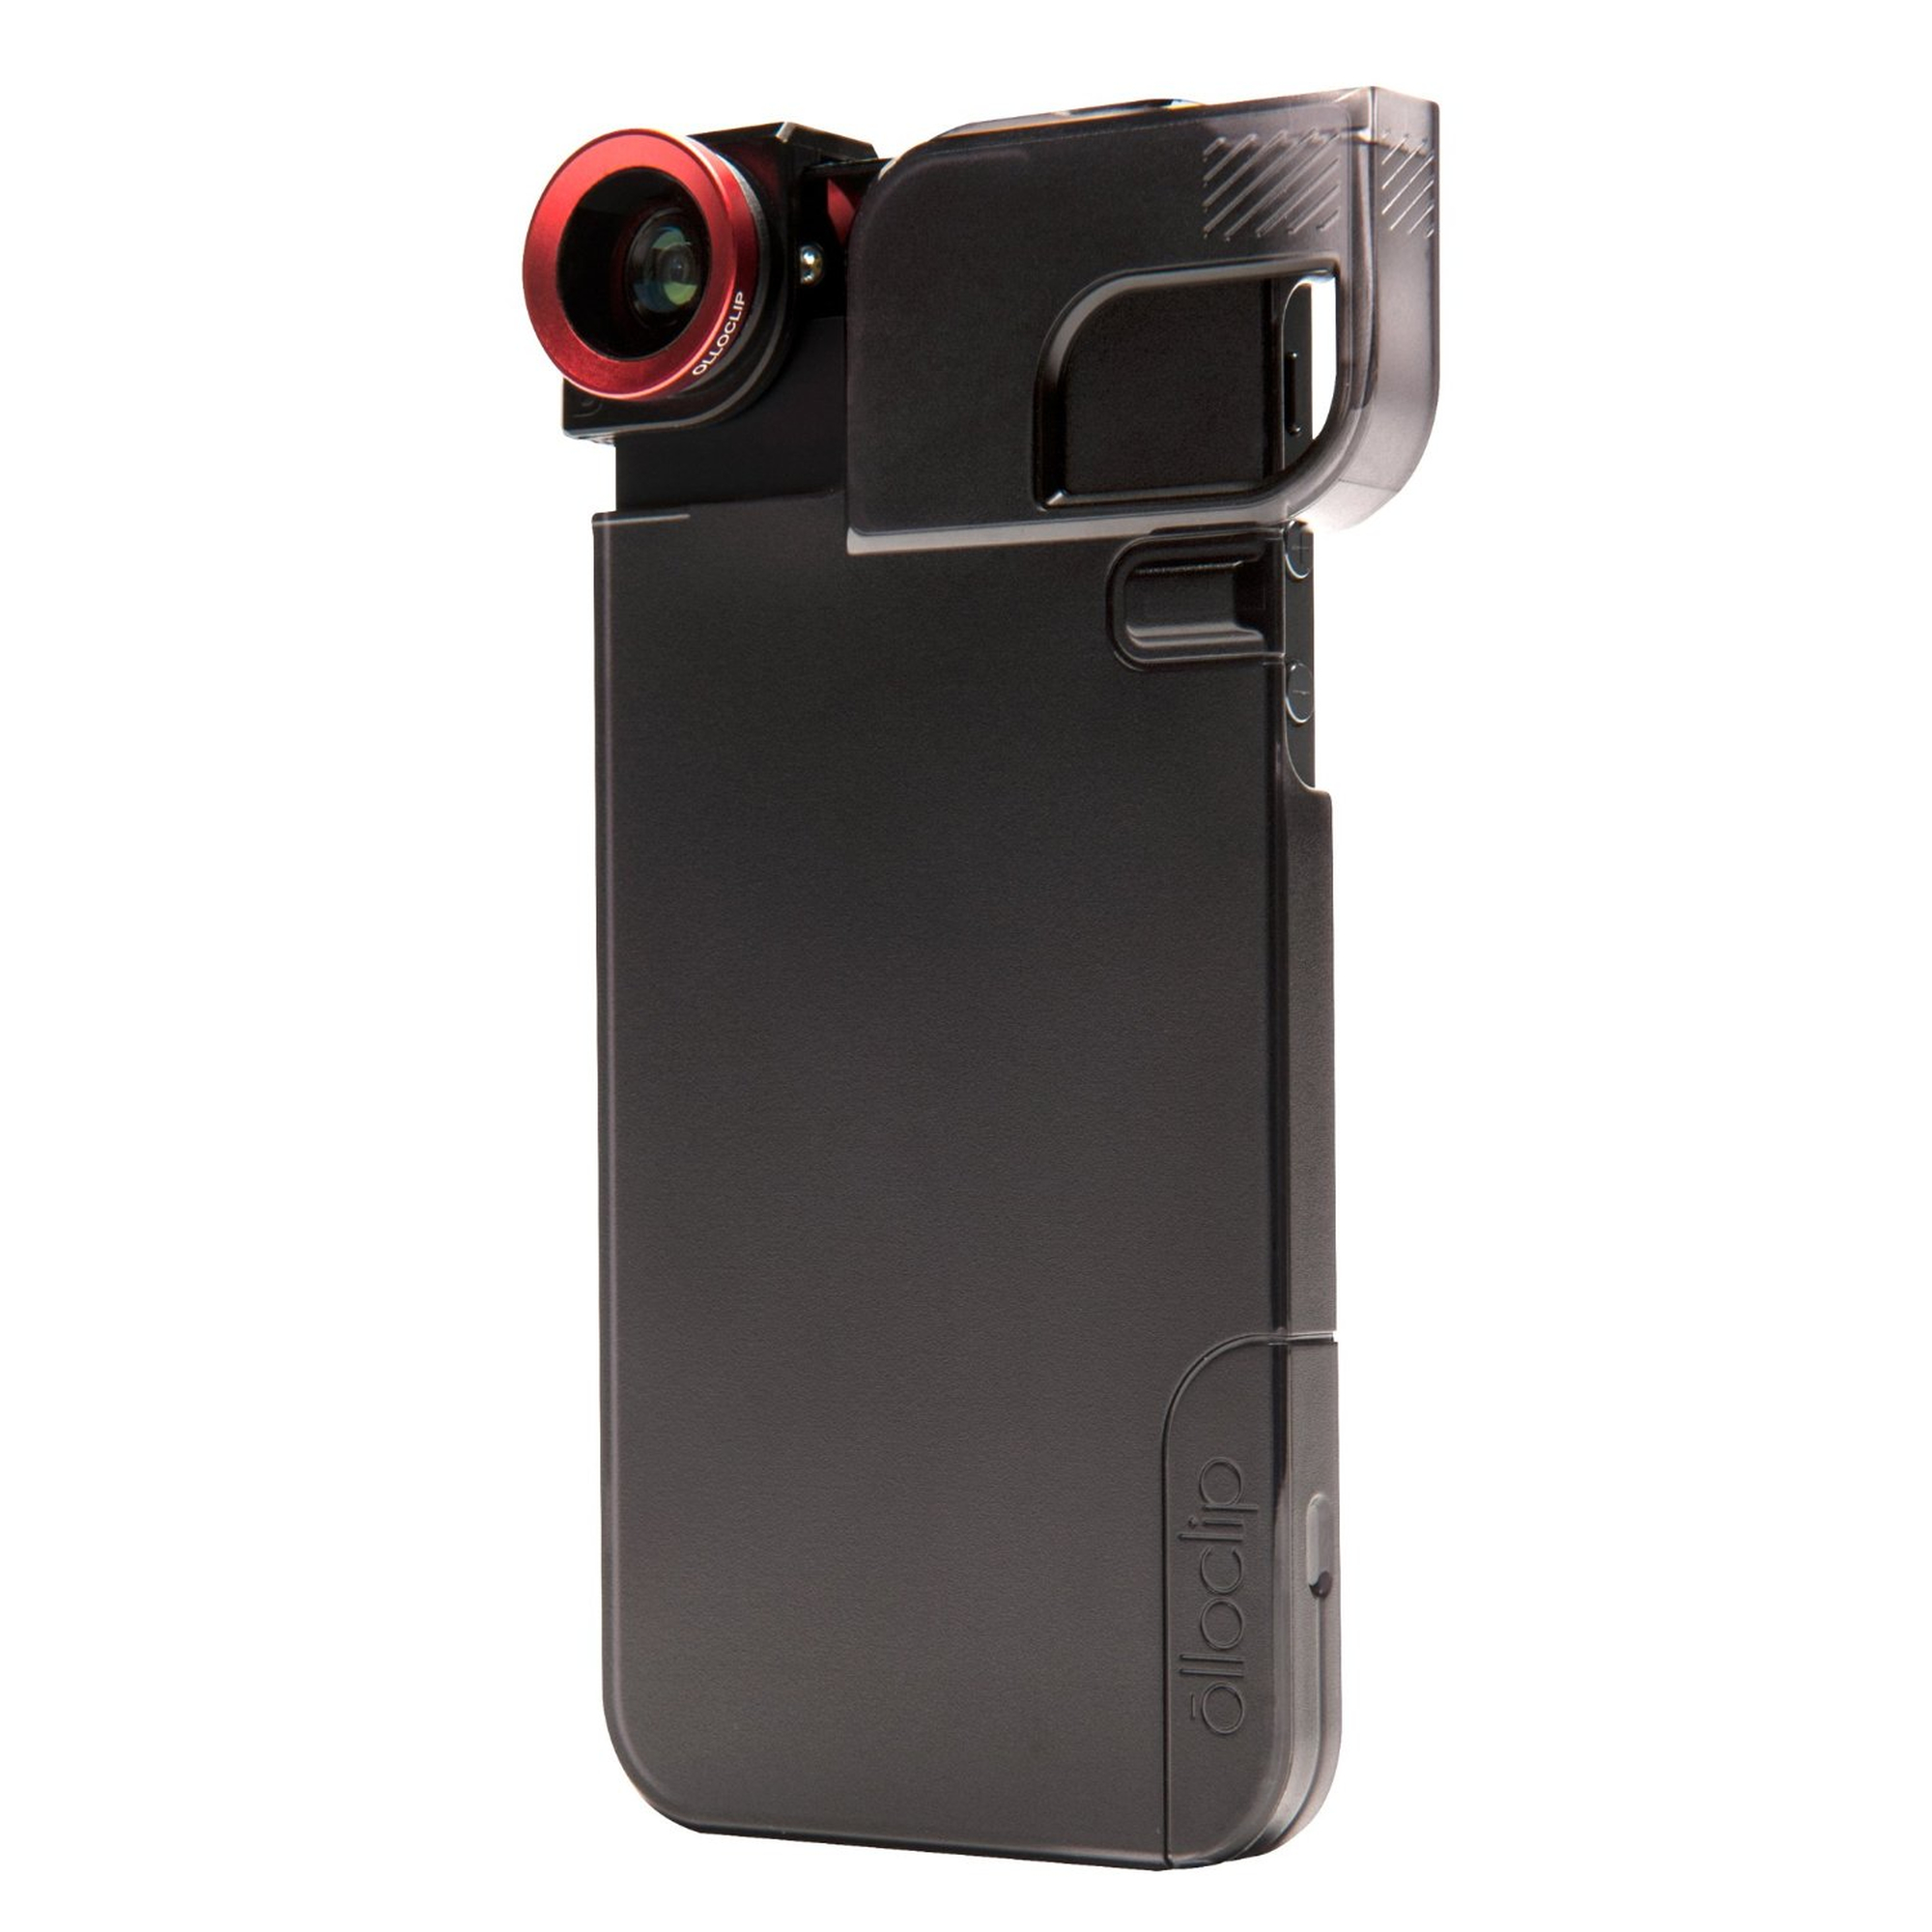 Olloclip 3-in-1 Set Hülle für Apple iPhone 5/5S inkl. rote Linse schwarz